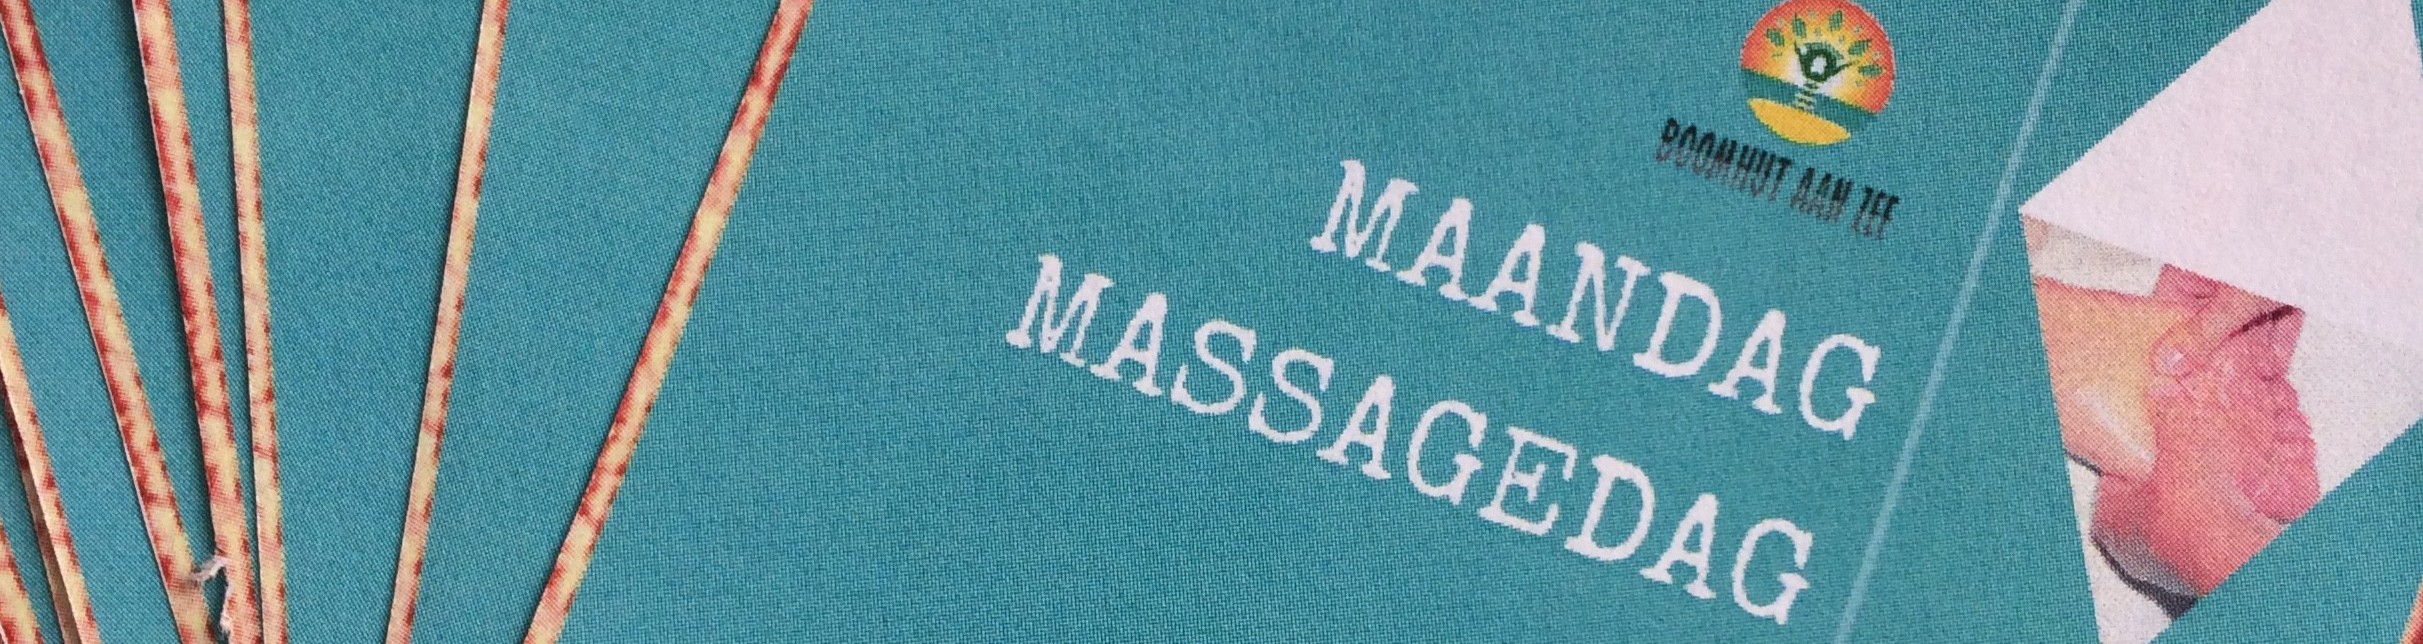 Maandag Massagedag - massageworkshop